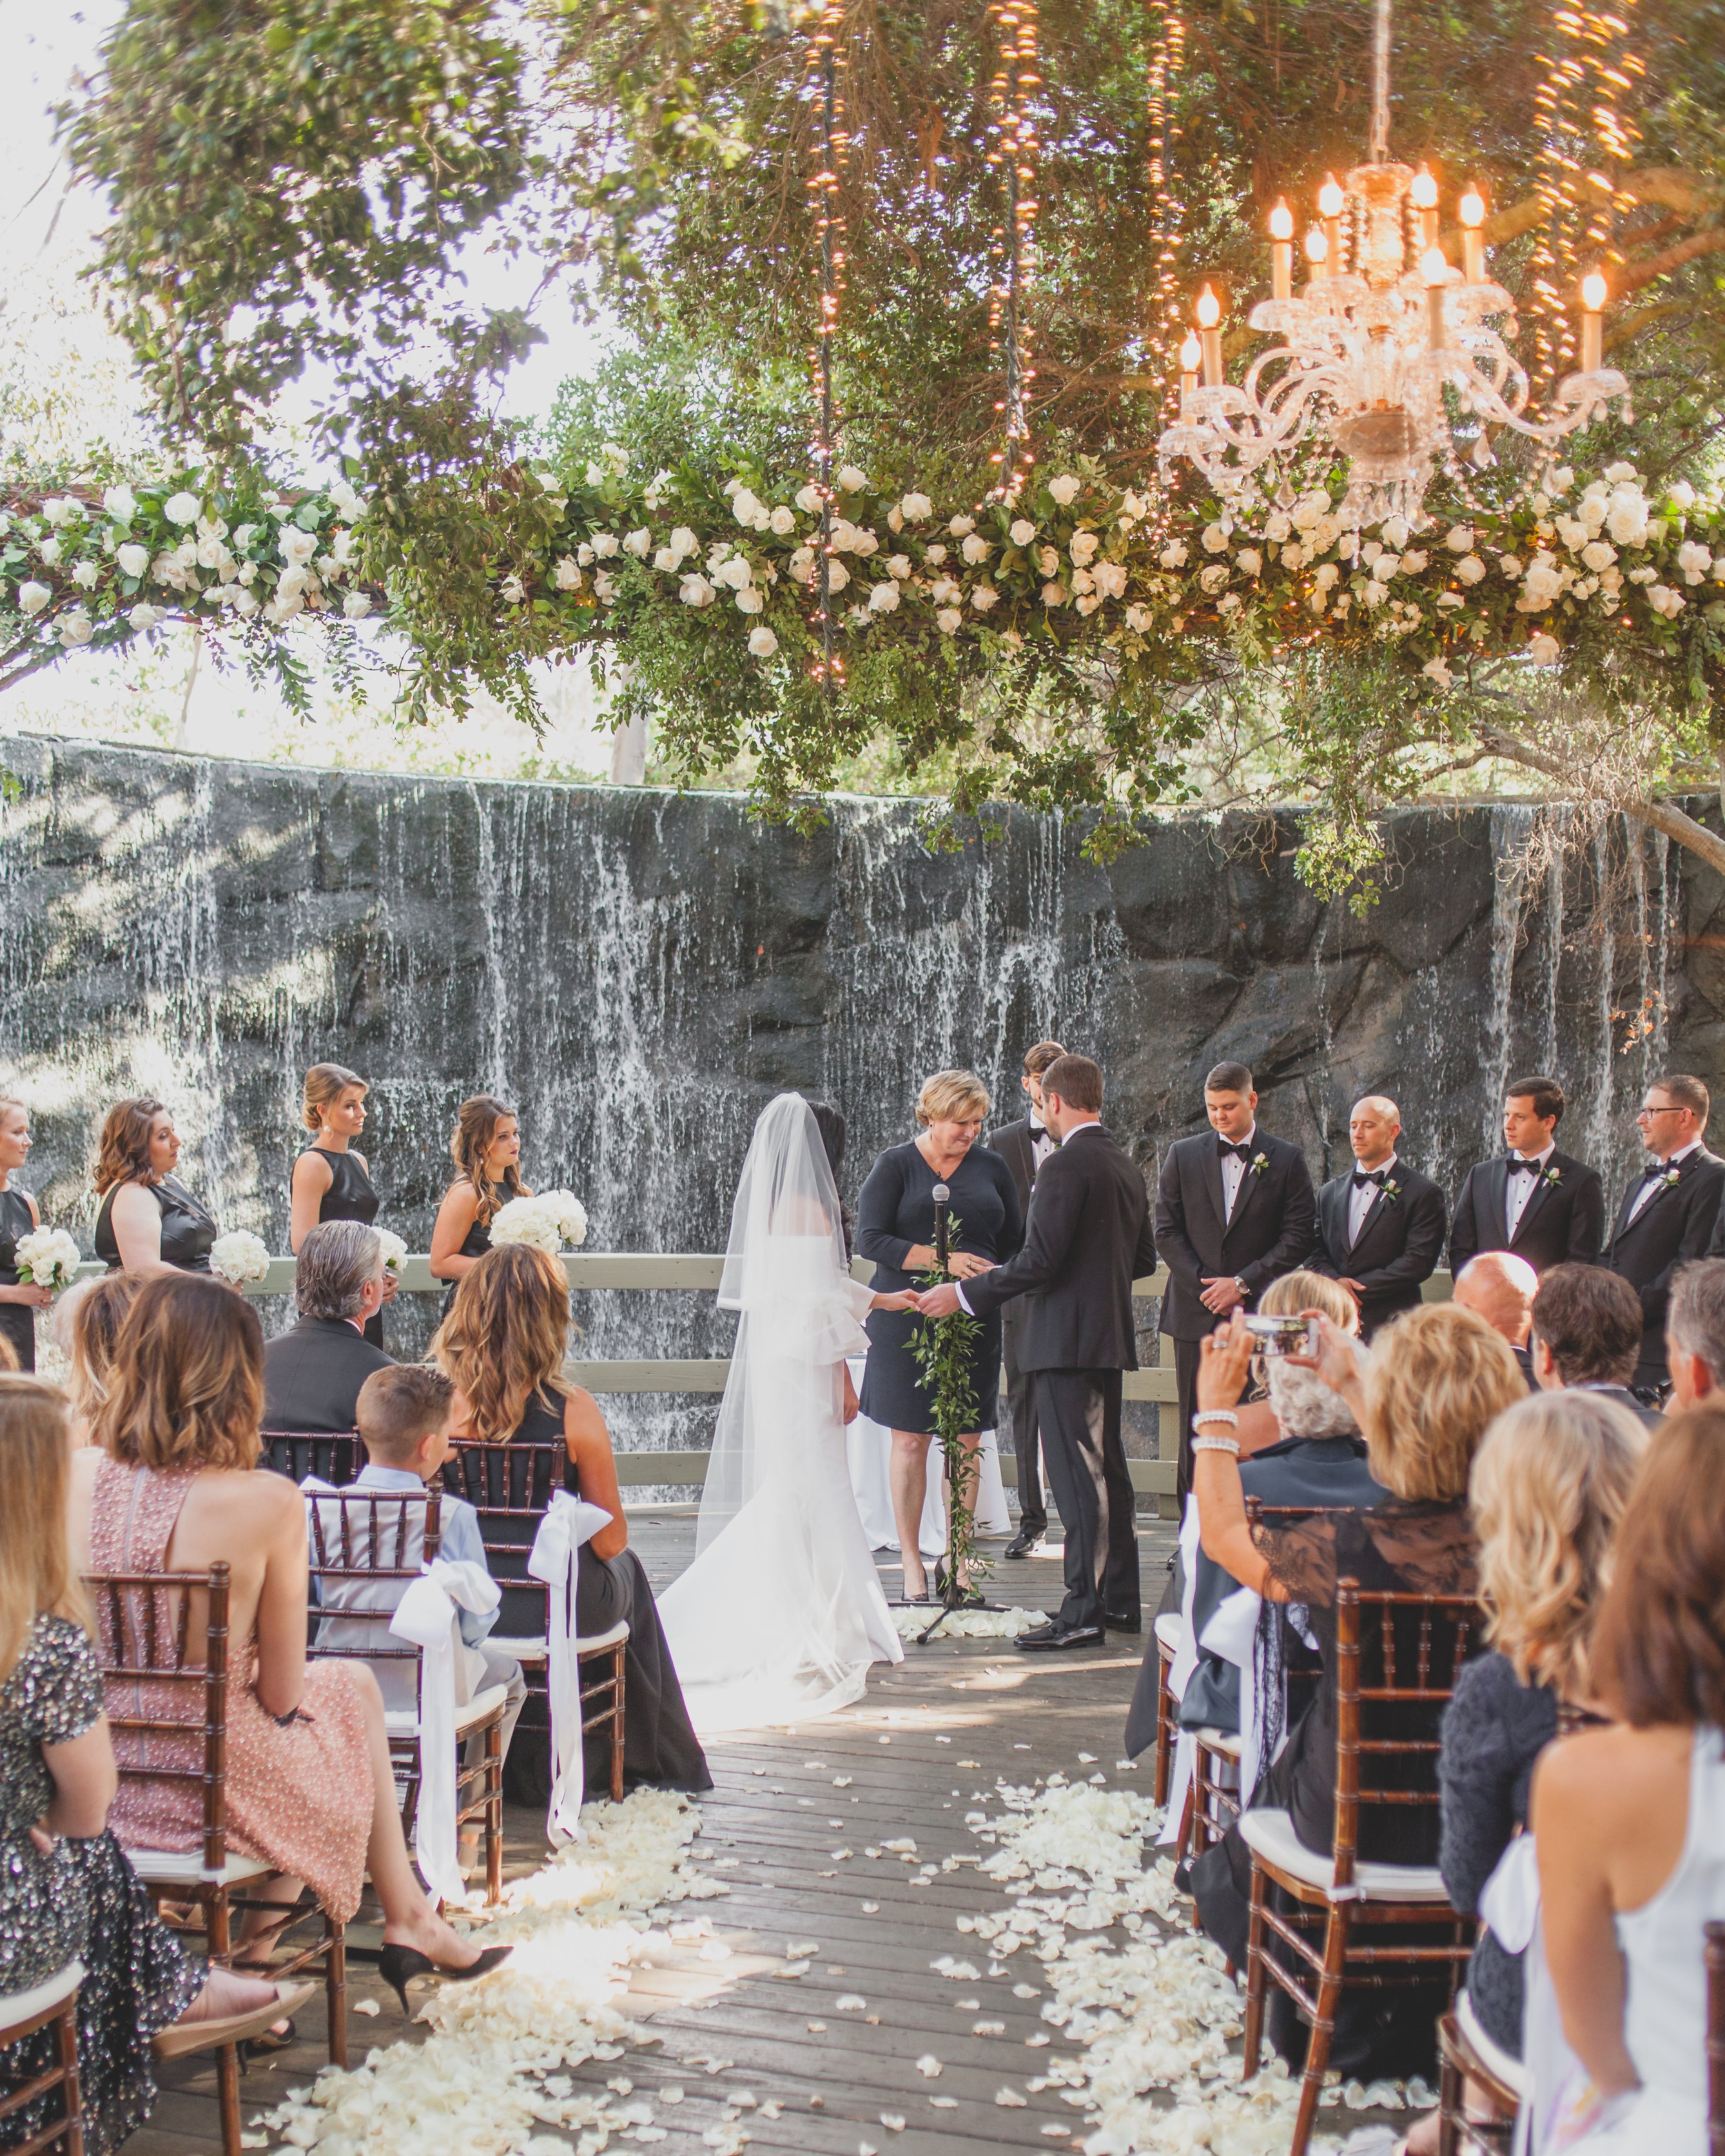 Garden Wedding Theme Feature - Wedding ceremony in front of a natural stone waterfall and stunning chandeliers draping from lush greenery.